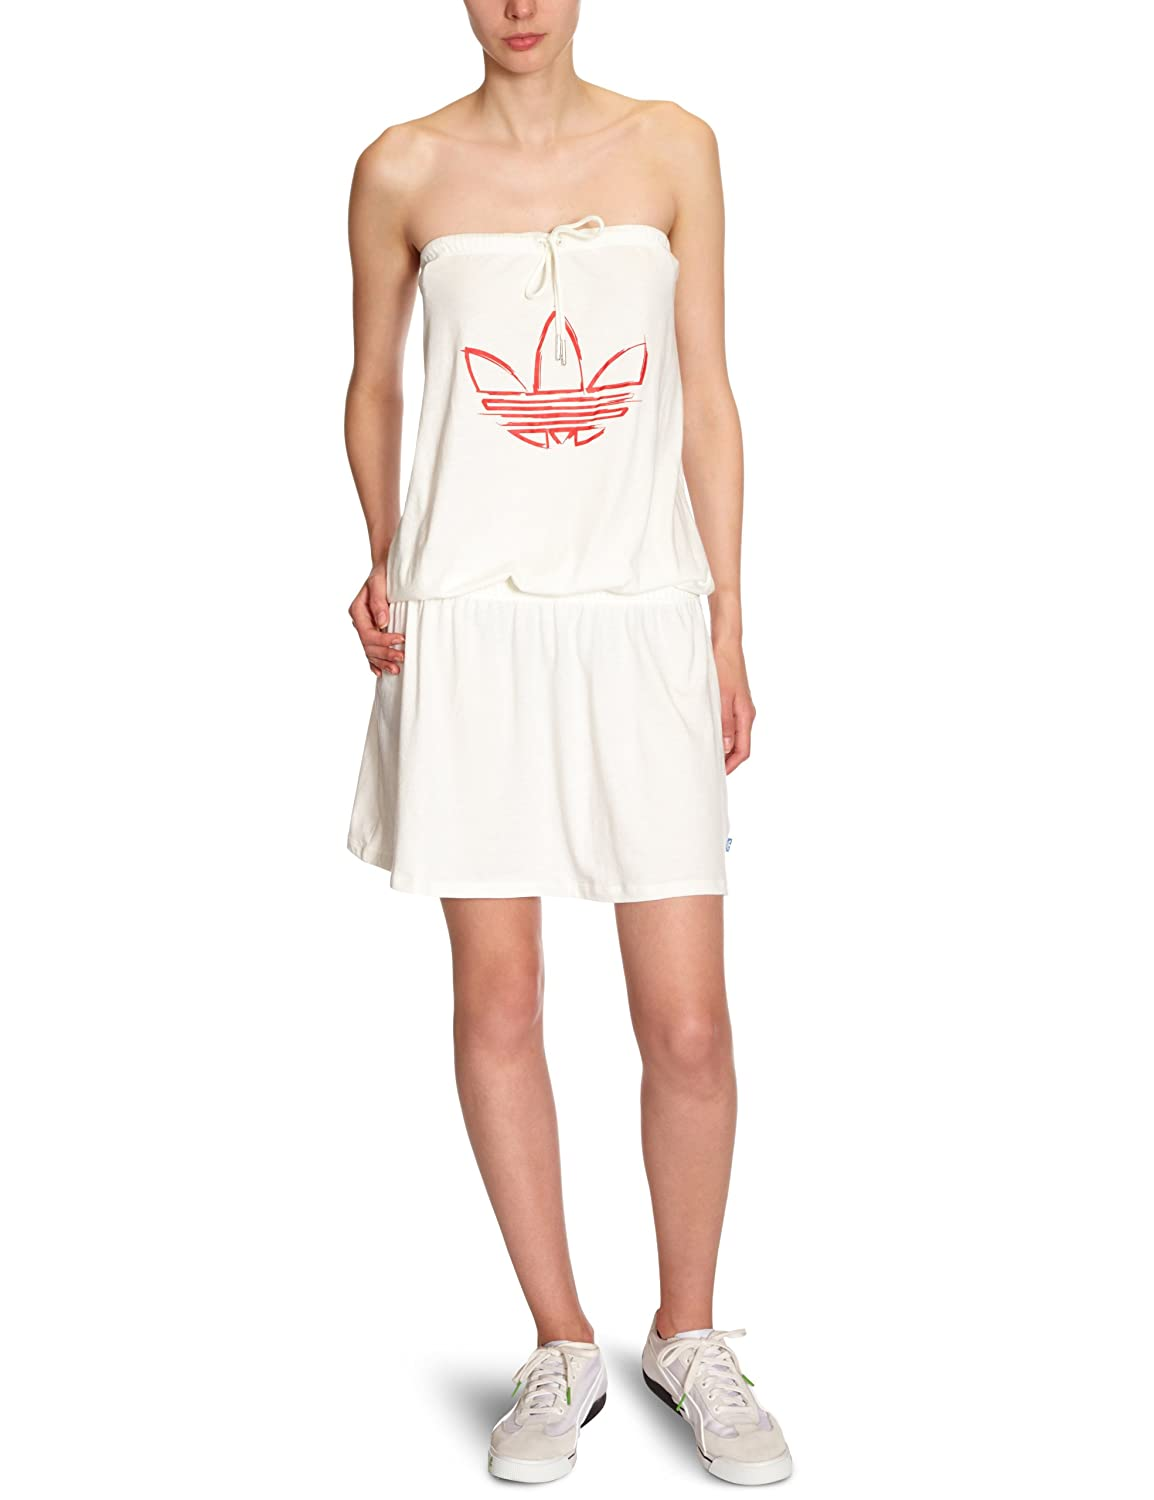 ddcc532bf1c adidas S Country Tube - Women s Dress White running white Size 40   Amazon.co.uk  Sports   Outdoors